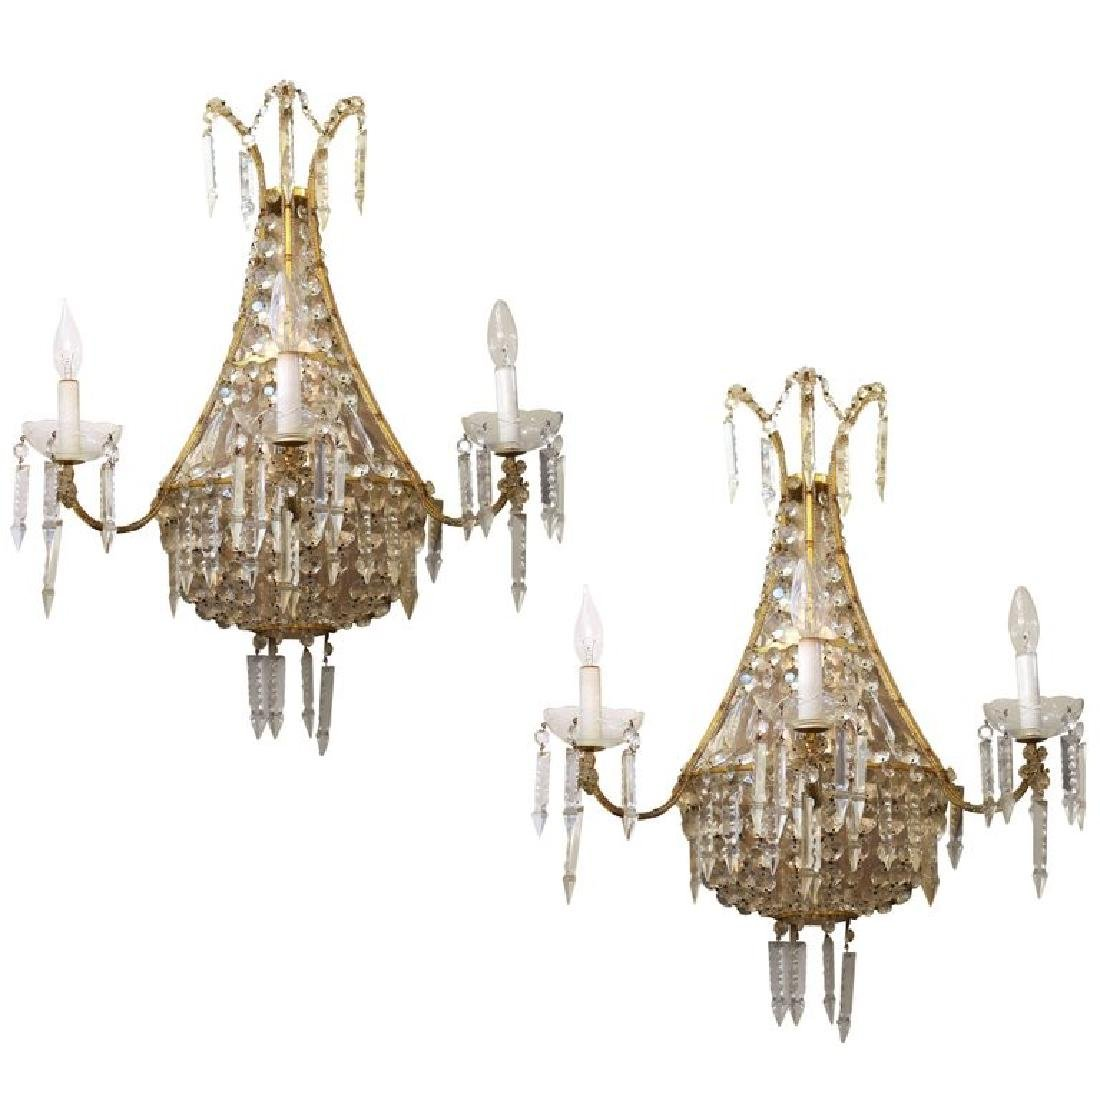 French Empire Manner Crystal Wall Sconces, Pair